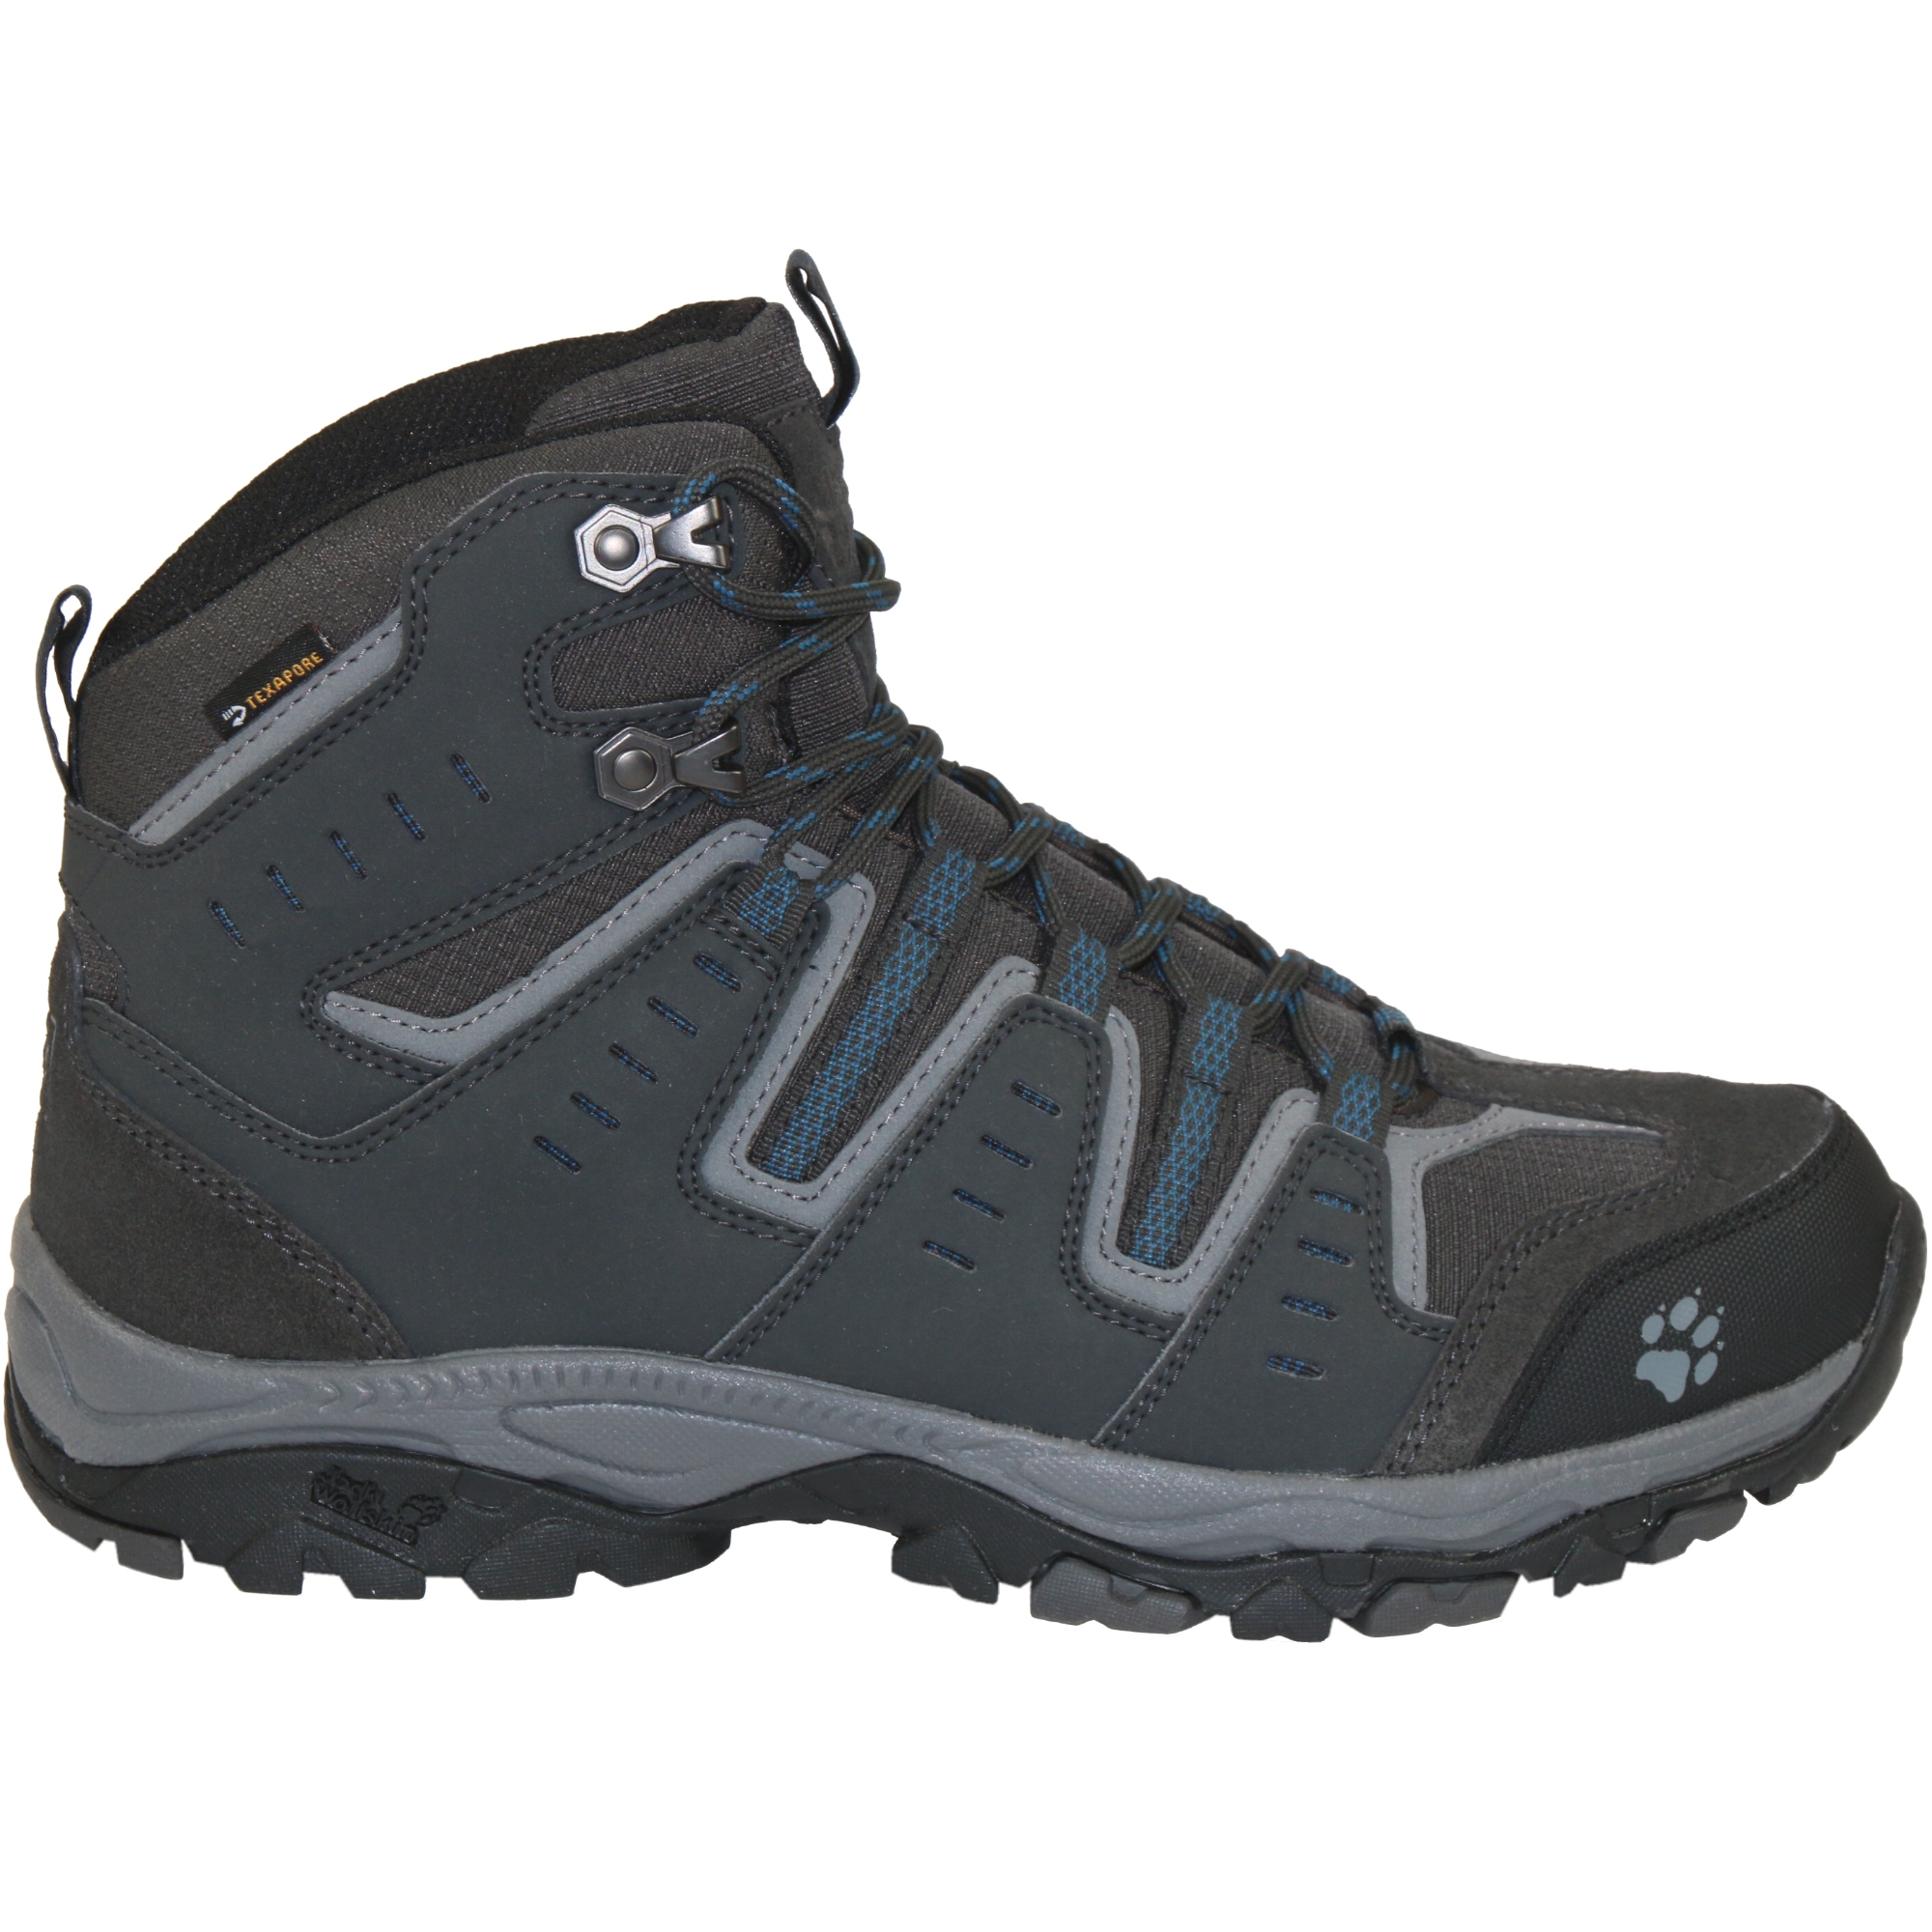 jack wolfskin mountain storm mid texapore shoes hiking boots outdoor men 39 s ebay. Black Bedroom Furniture Sets. Home Design Ideas